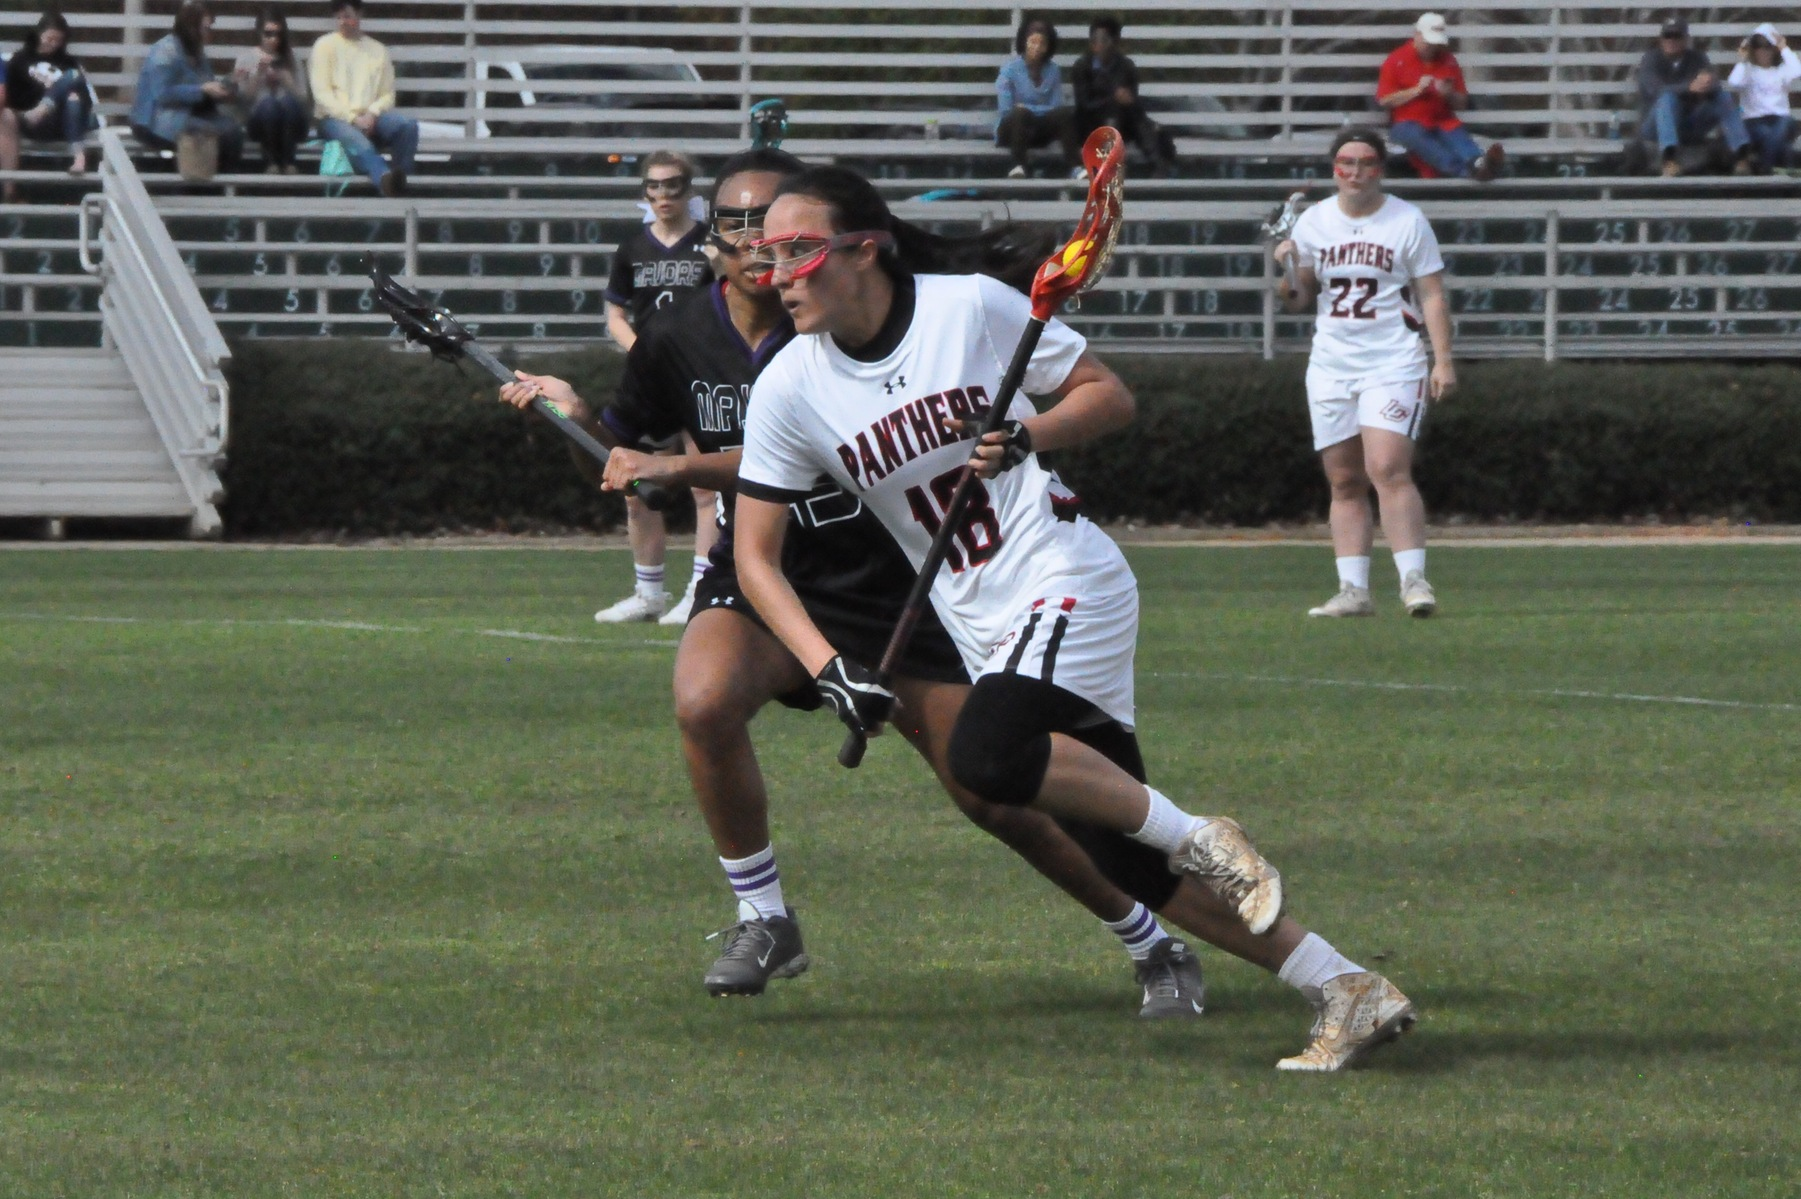 2016-17 Review/Lacrosse: Eva Tallent named USA South Rookie of the Week after helping Panthers to opening win